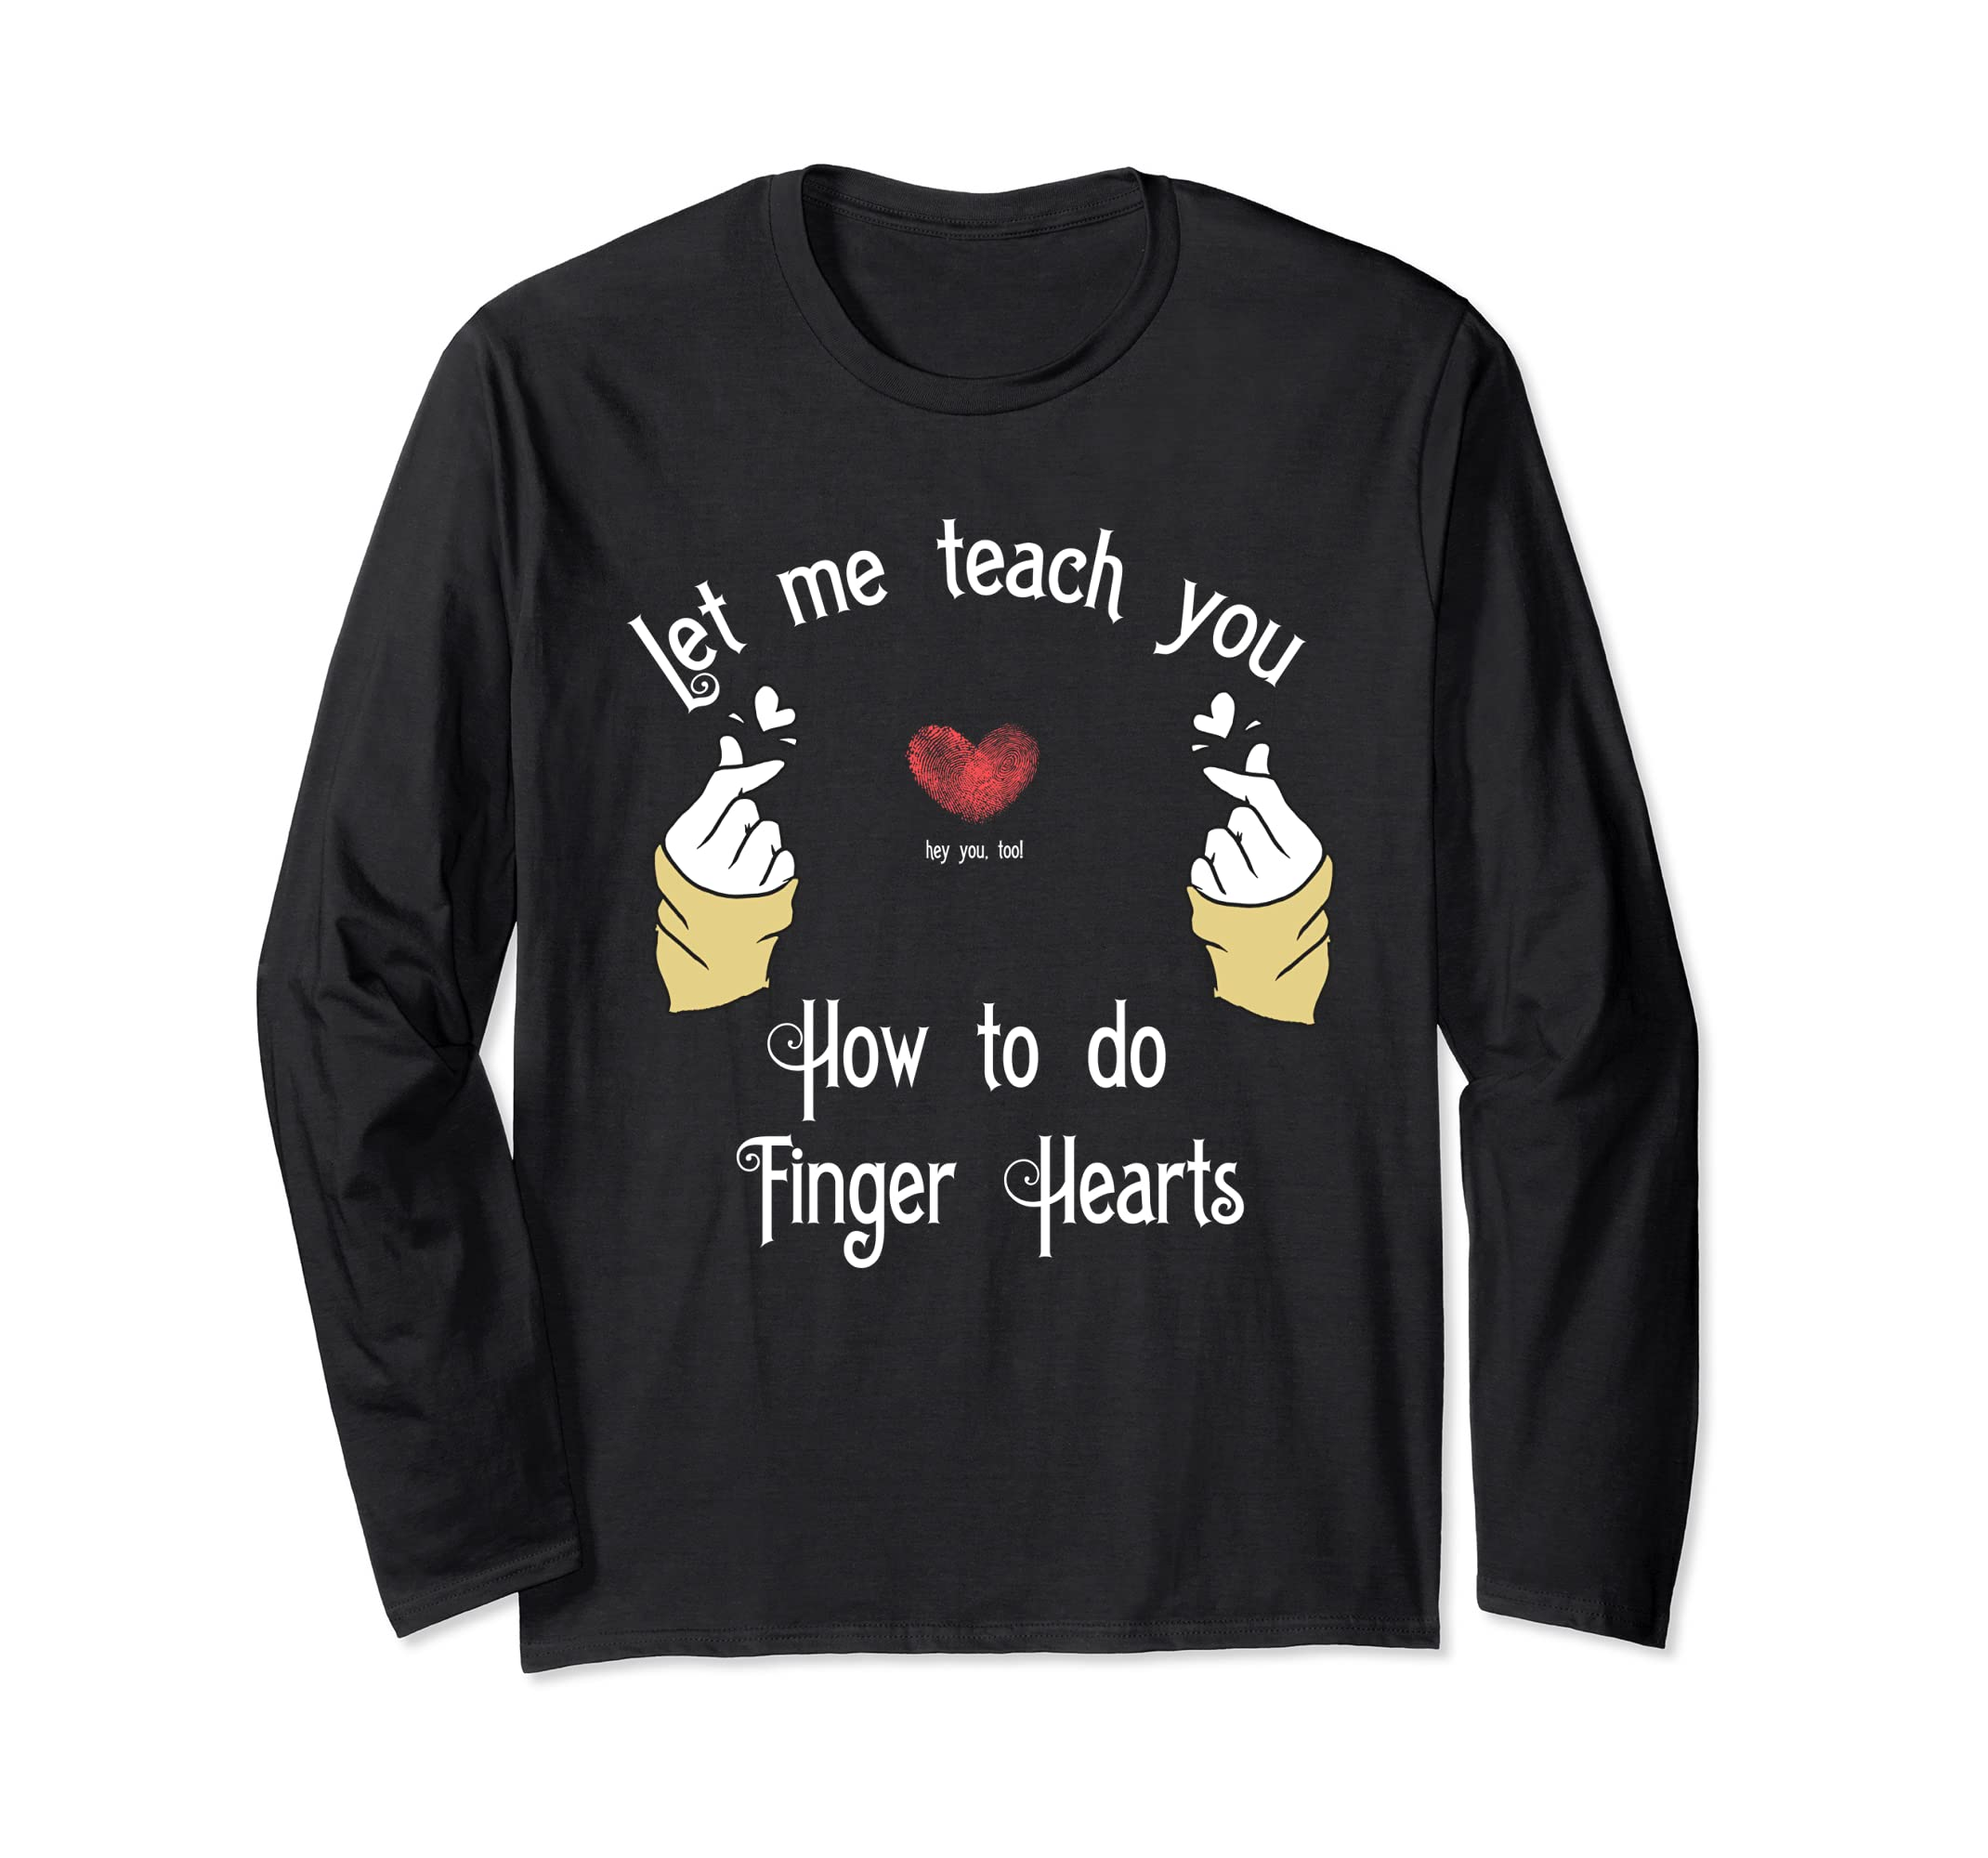 Funny how to do finger heart T shirt-Awarplus